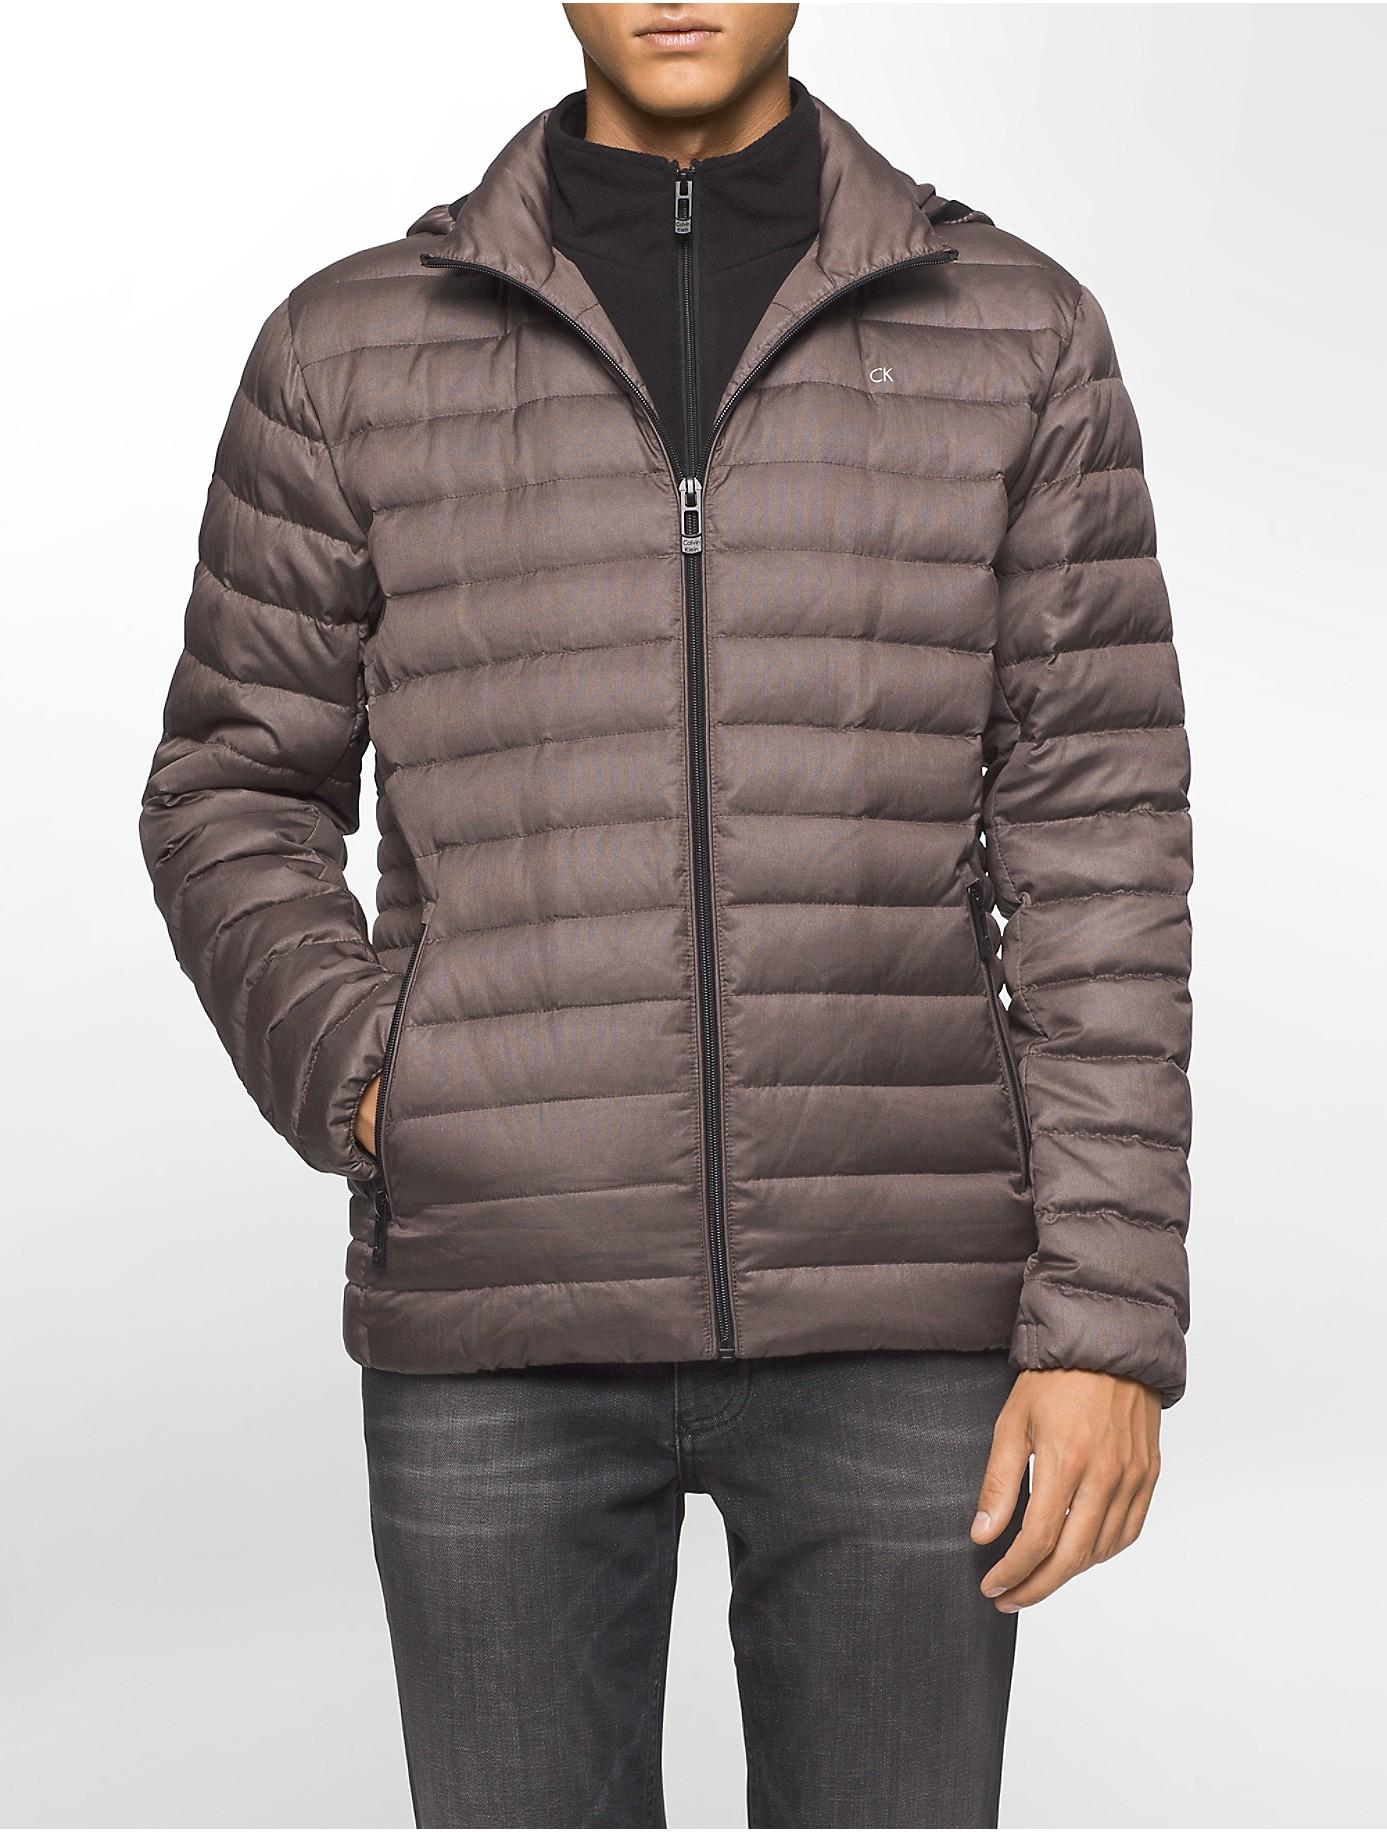 Calvin klein Packable Down Hooded Puffer Jacket for Men | Lyst